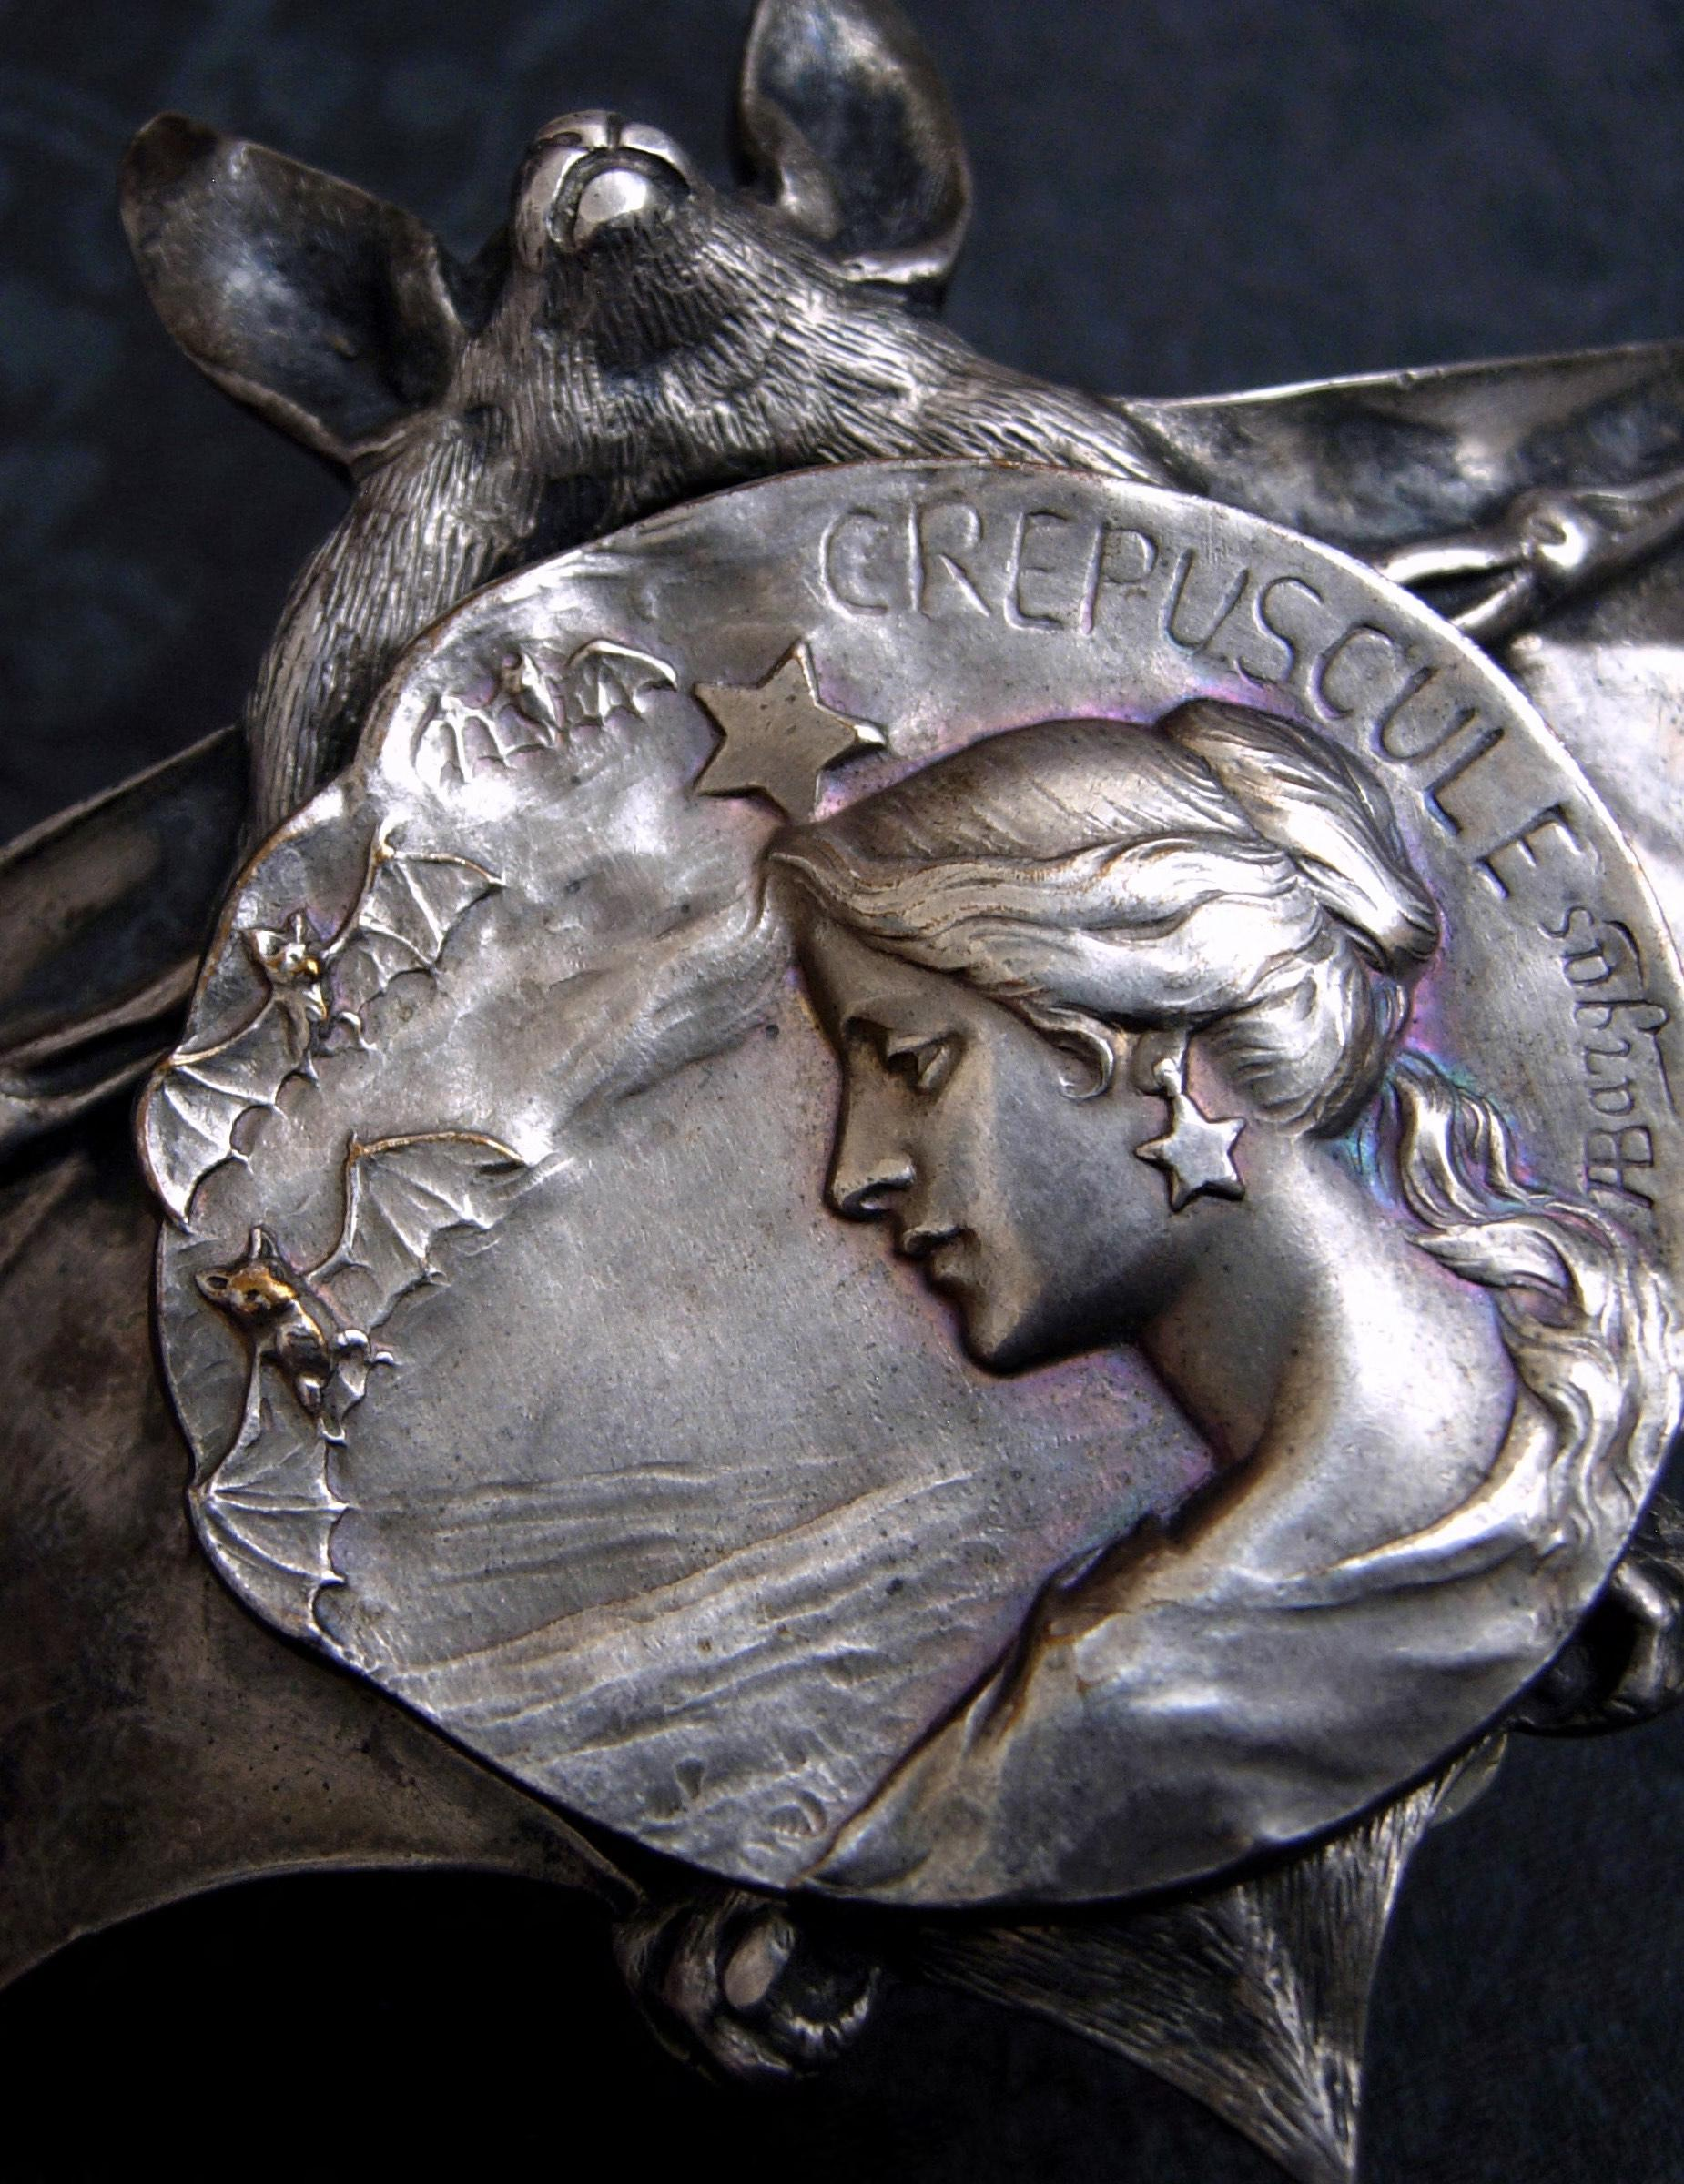 """Crepuscule (French for """"dusk""""): a grand French figural button carved by Armand Bargas with the romantic twilight-themed scene of a chignoned woman surrounded by a trio of bats flying through the starlit sky—resting atop a rare antique Sterling silver buckle carved in the form of an open-winged bat by Ferdinand Erhart, circa 1908."""